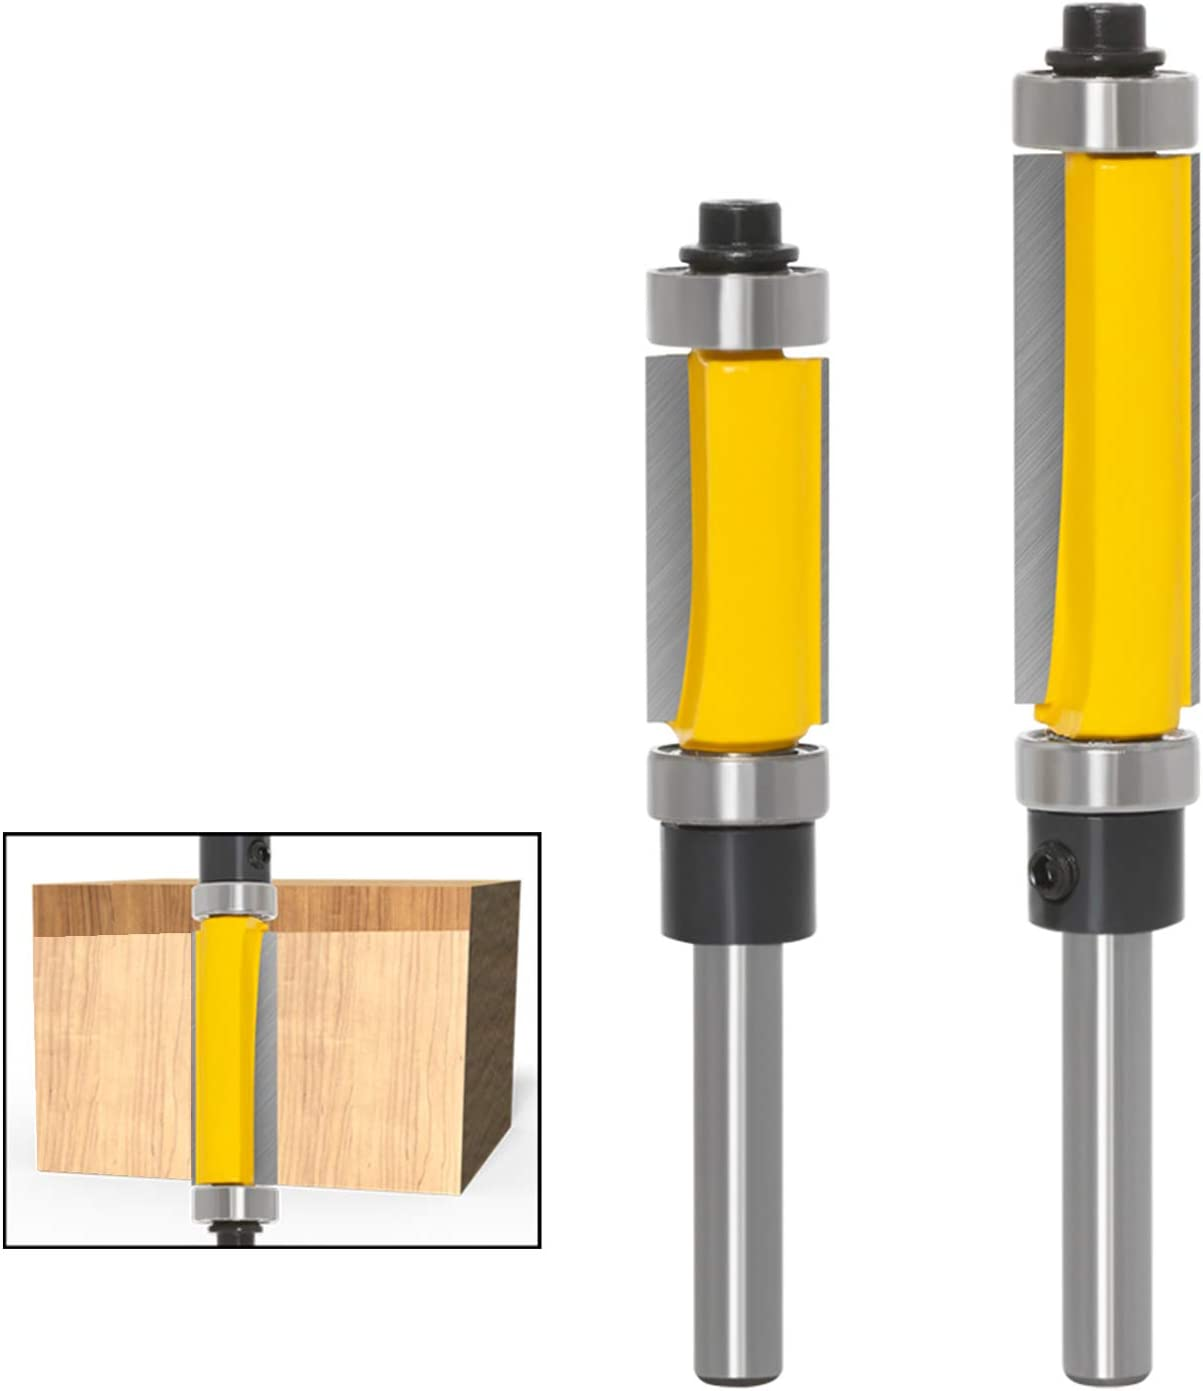 Meihejia 1 4 Inch Shank Pattern Flush Trim Bit Max 78% OFF Router T with Tucson Mall Set